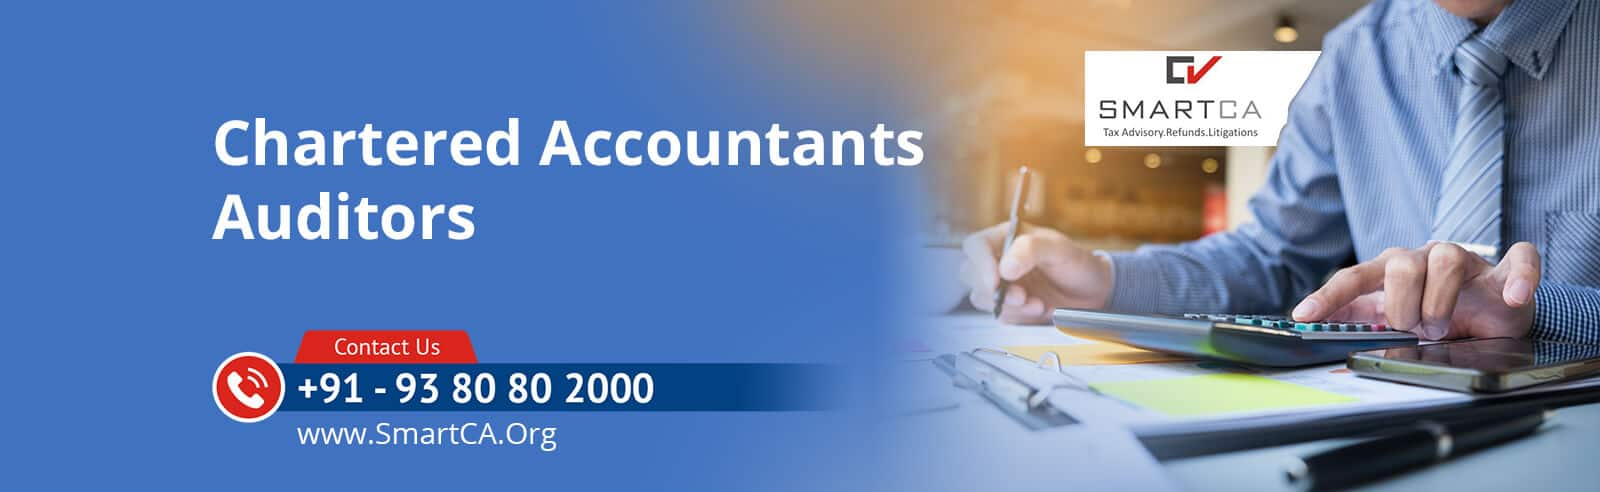 Auditors in Chennai NEELANKARAI